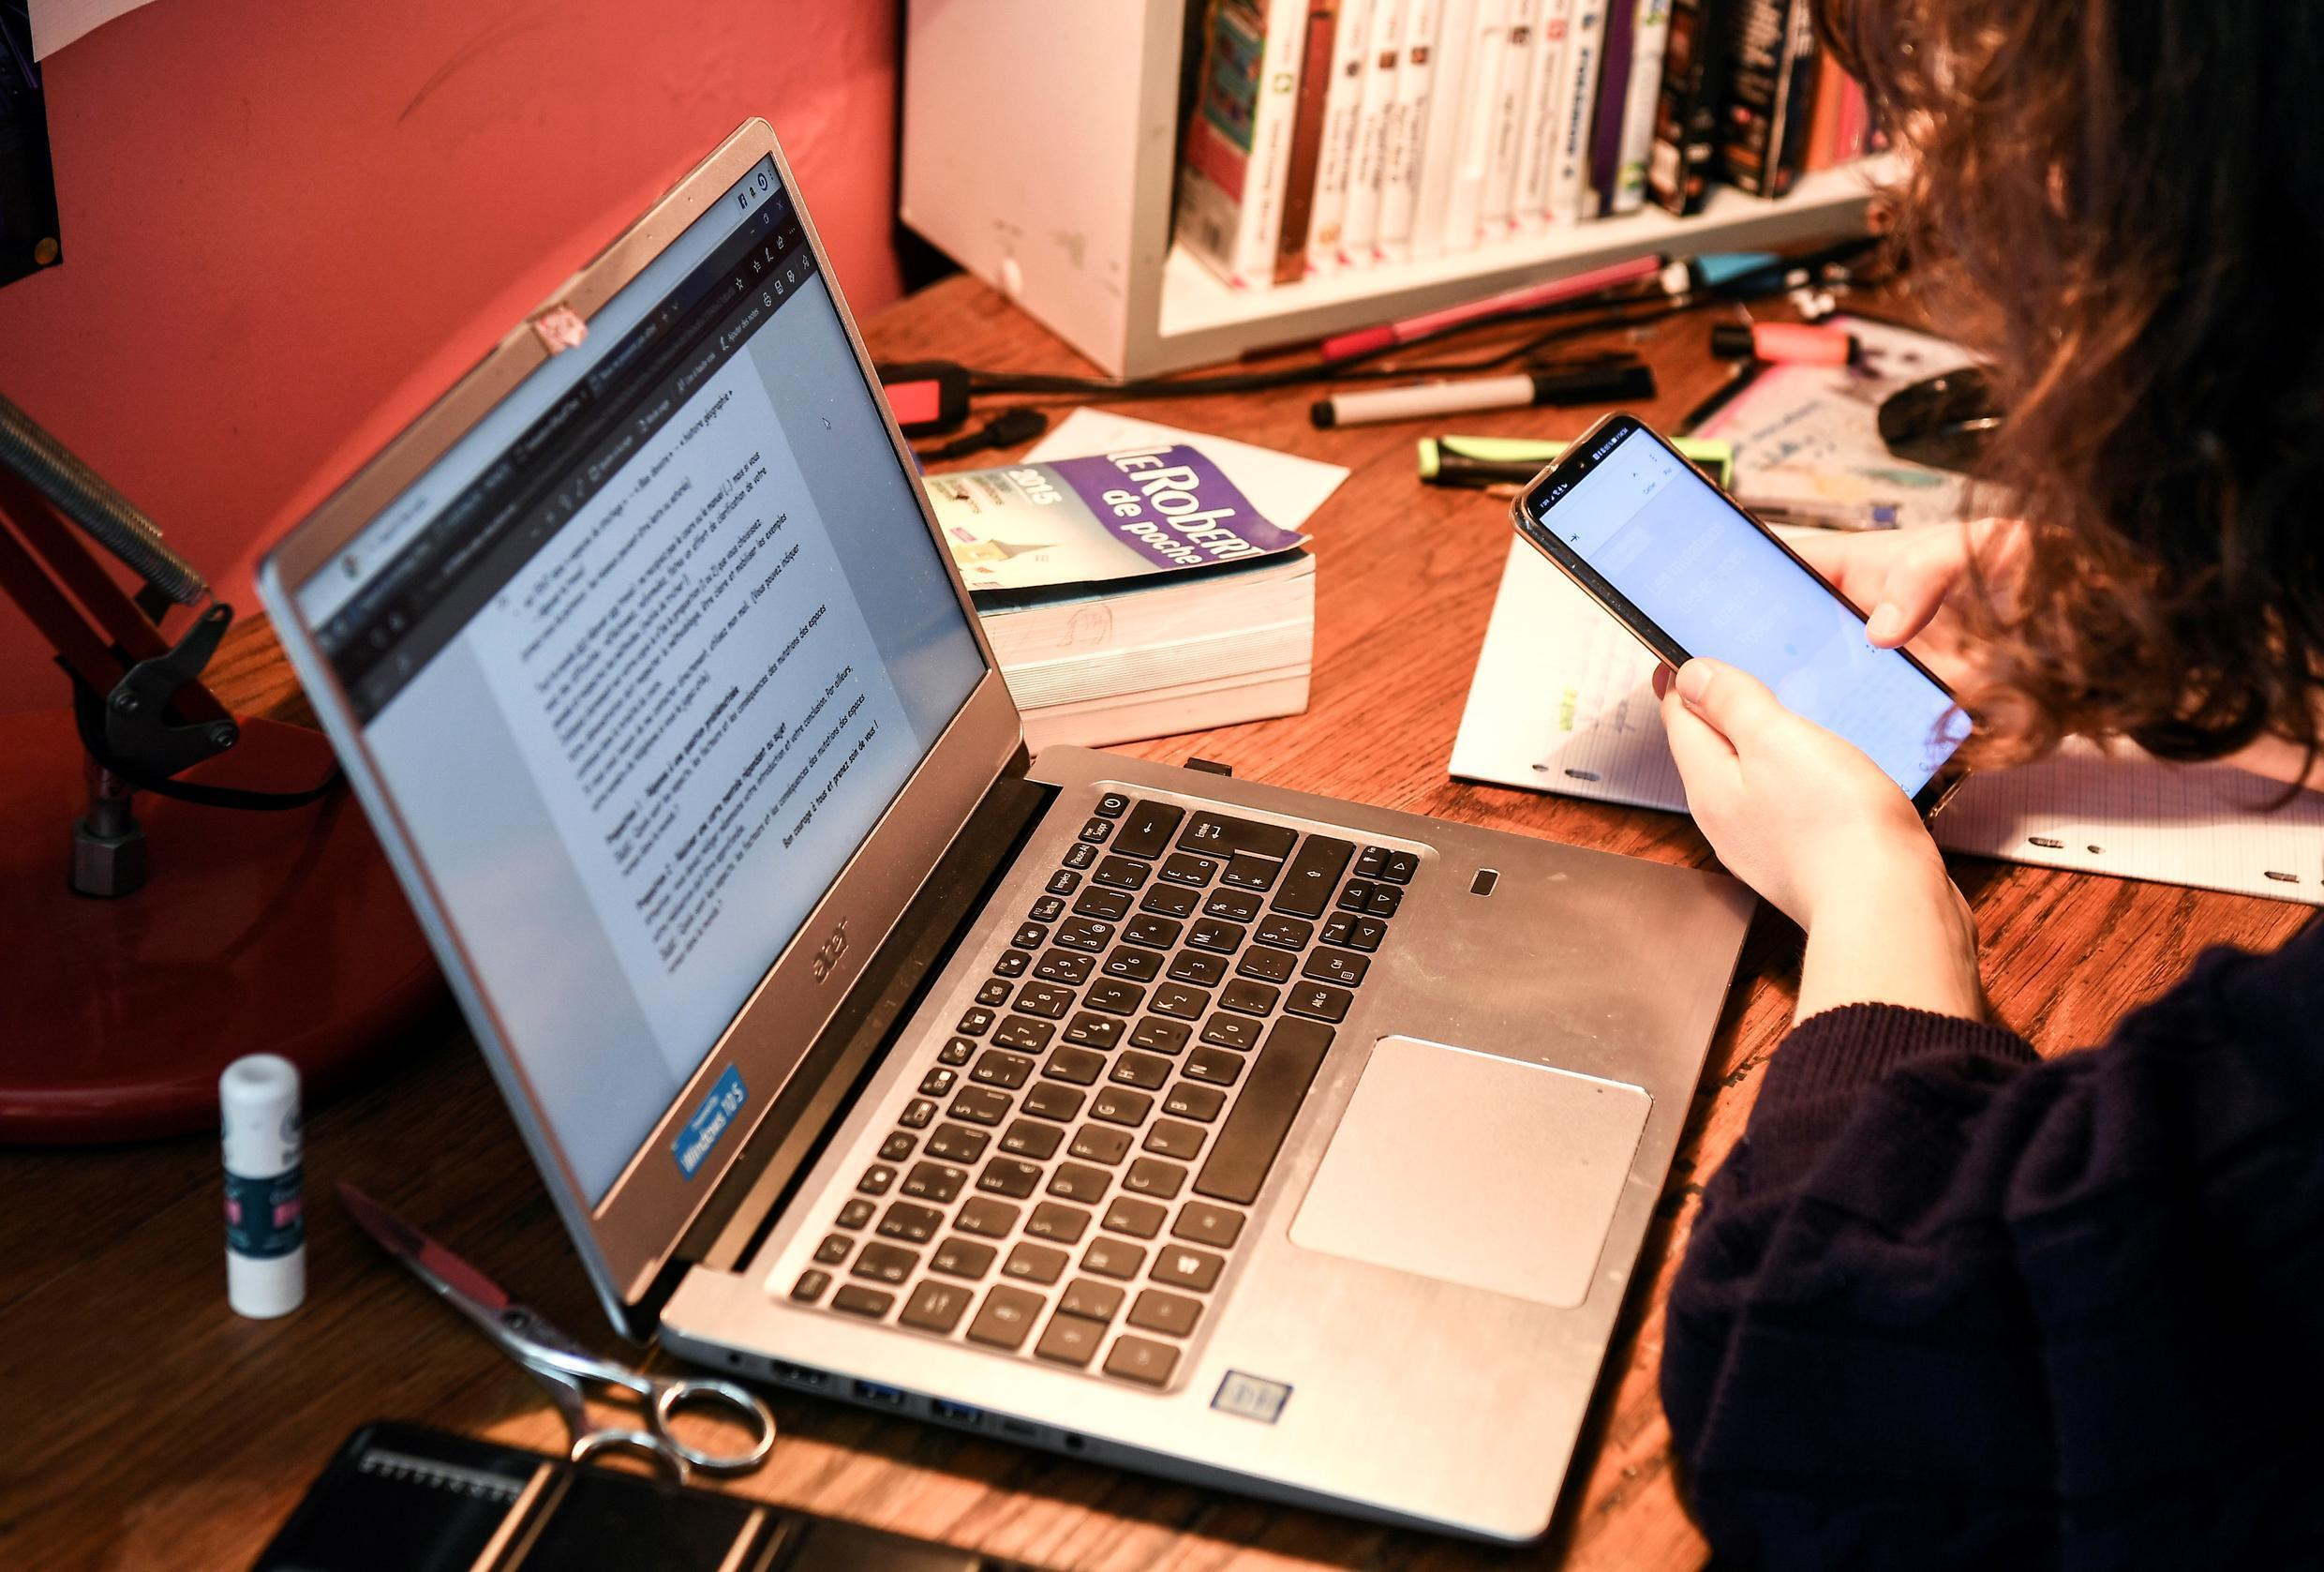 A French student follows a university course online in her room on March 27, 2020, during the lockdown due to the coronavirus outbreak.